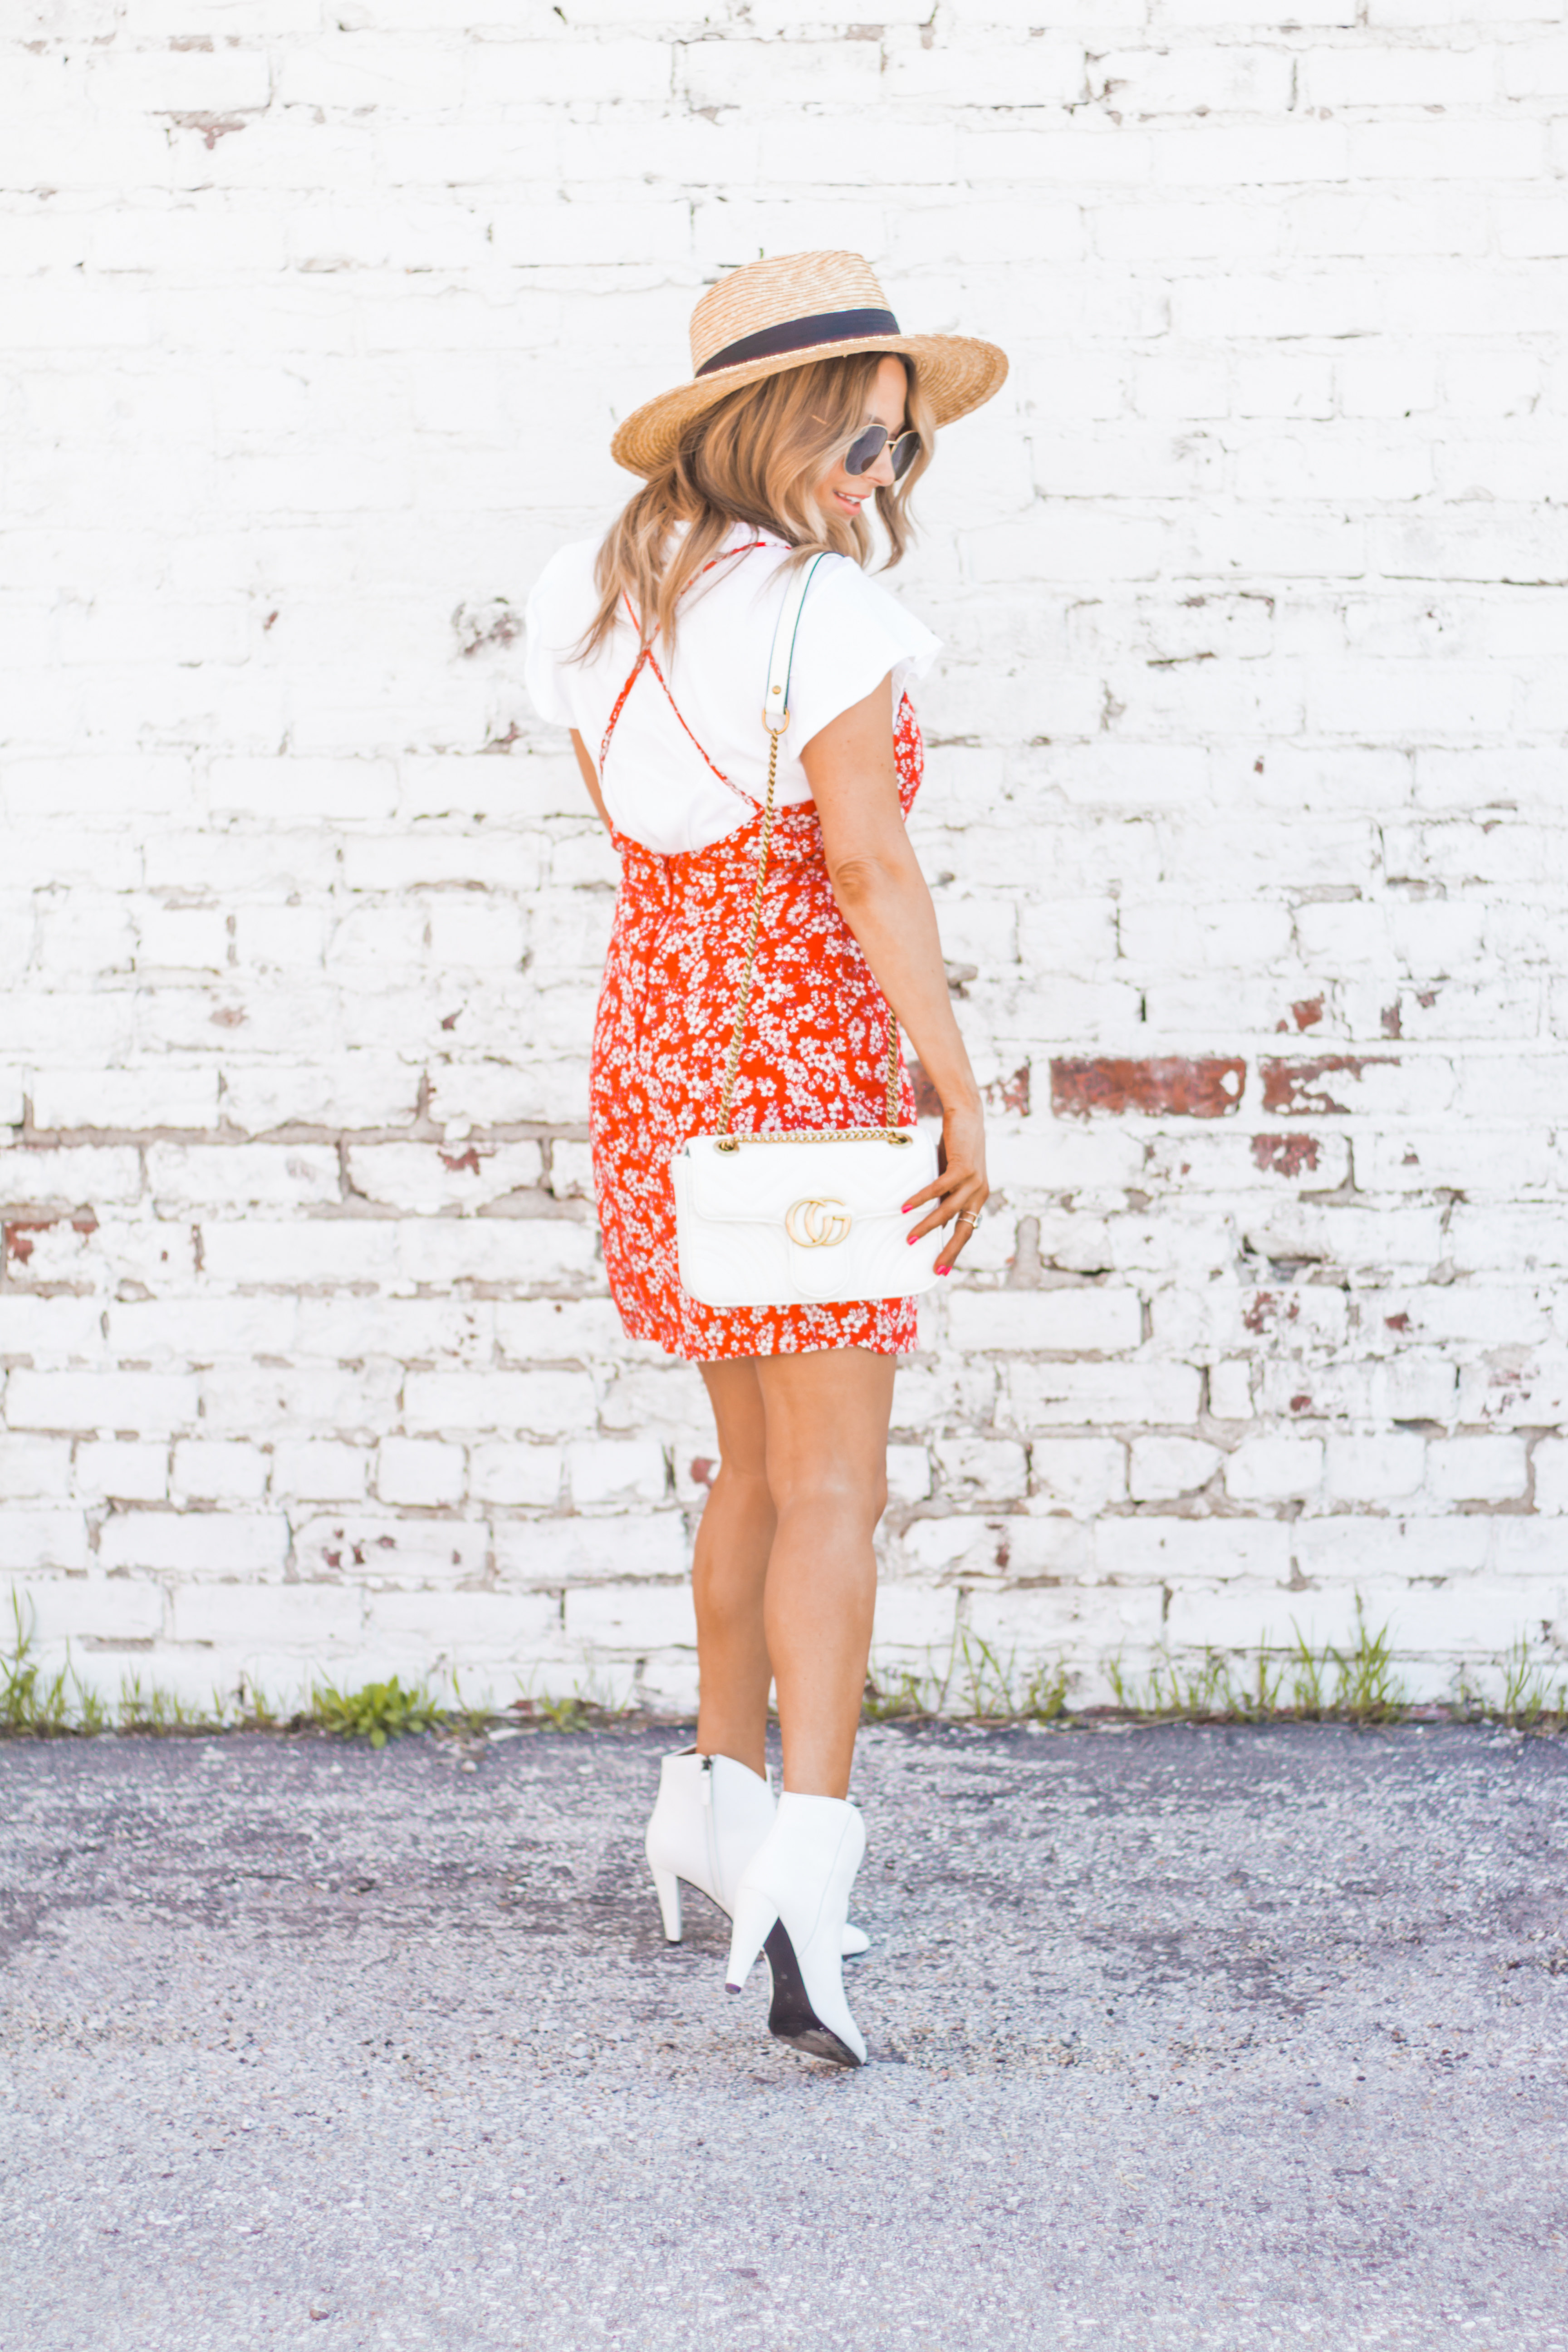 red-sundress-spring-summer-dress-floral dress-women's fashion- spring fashion-summer fashion-brixton hat-white booties-Omaha blogger-sabby style-14